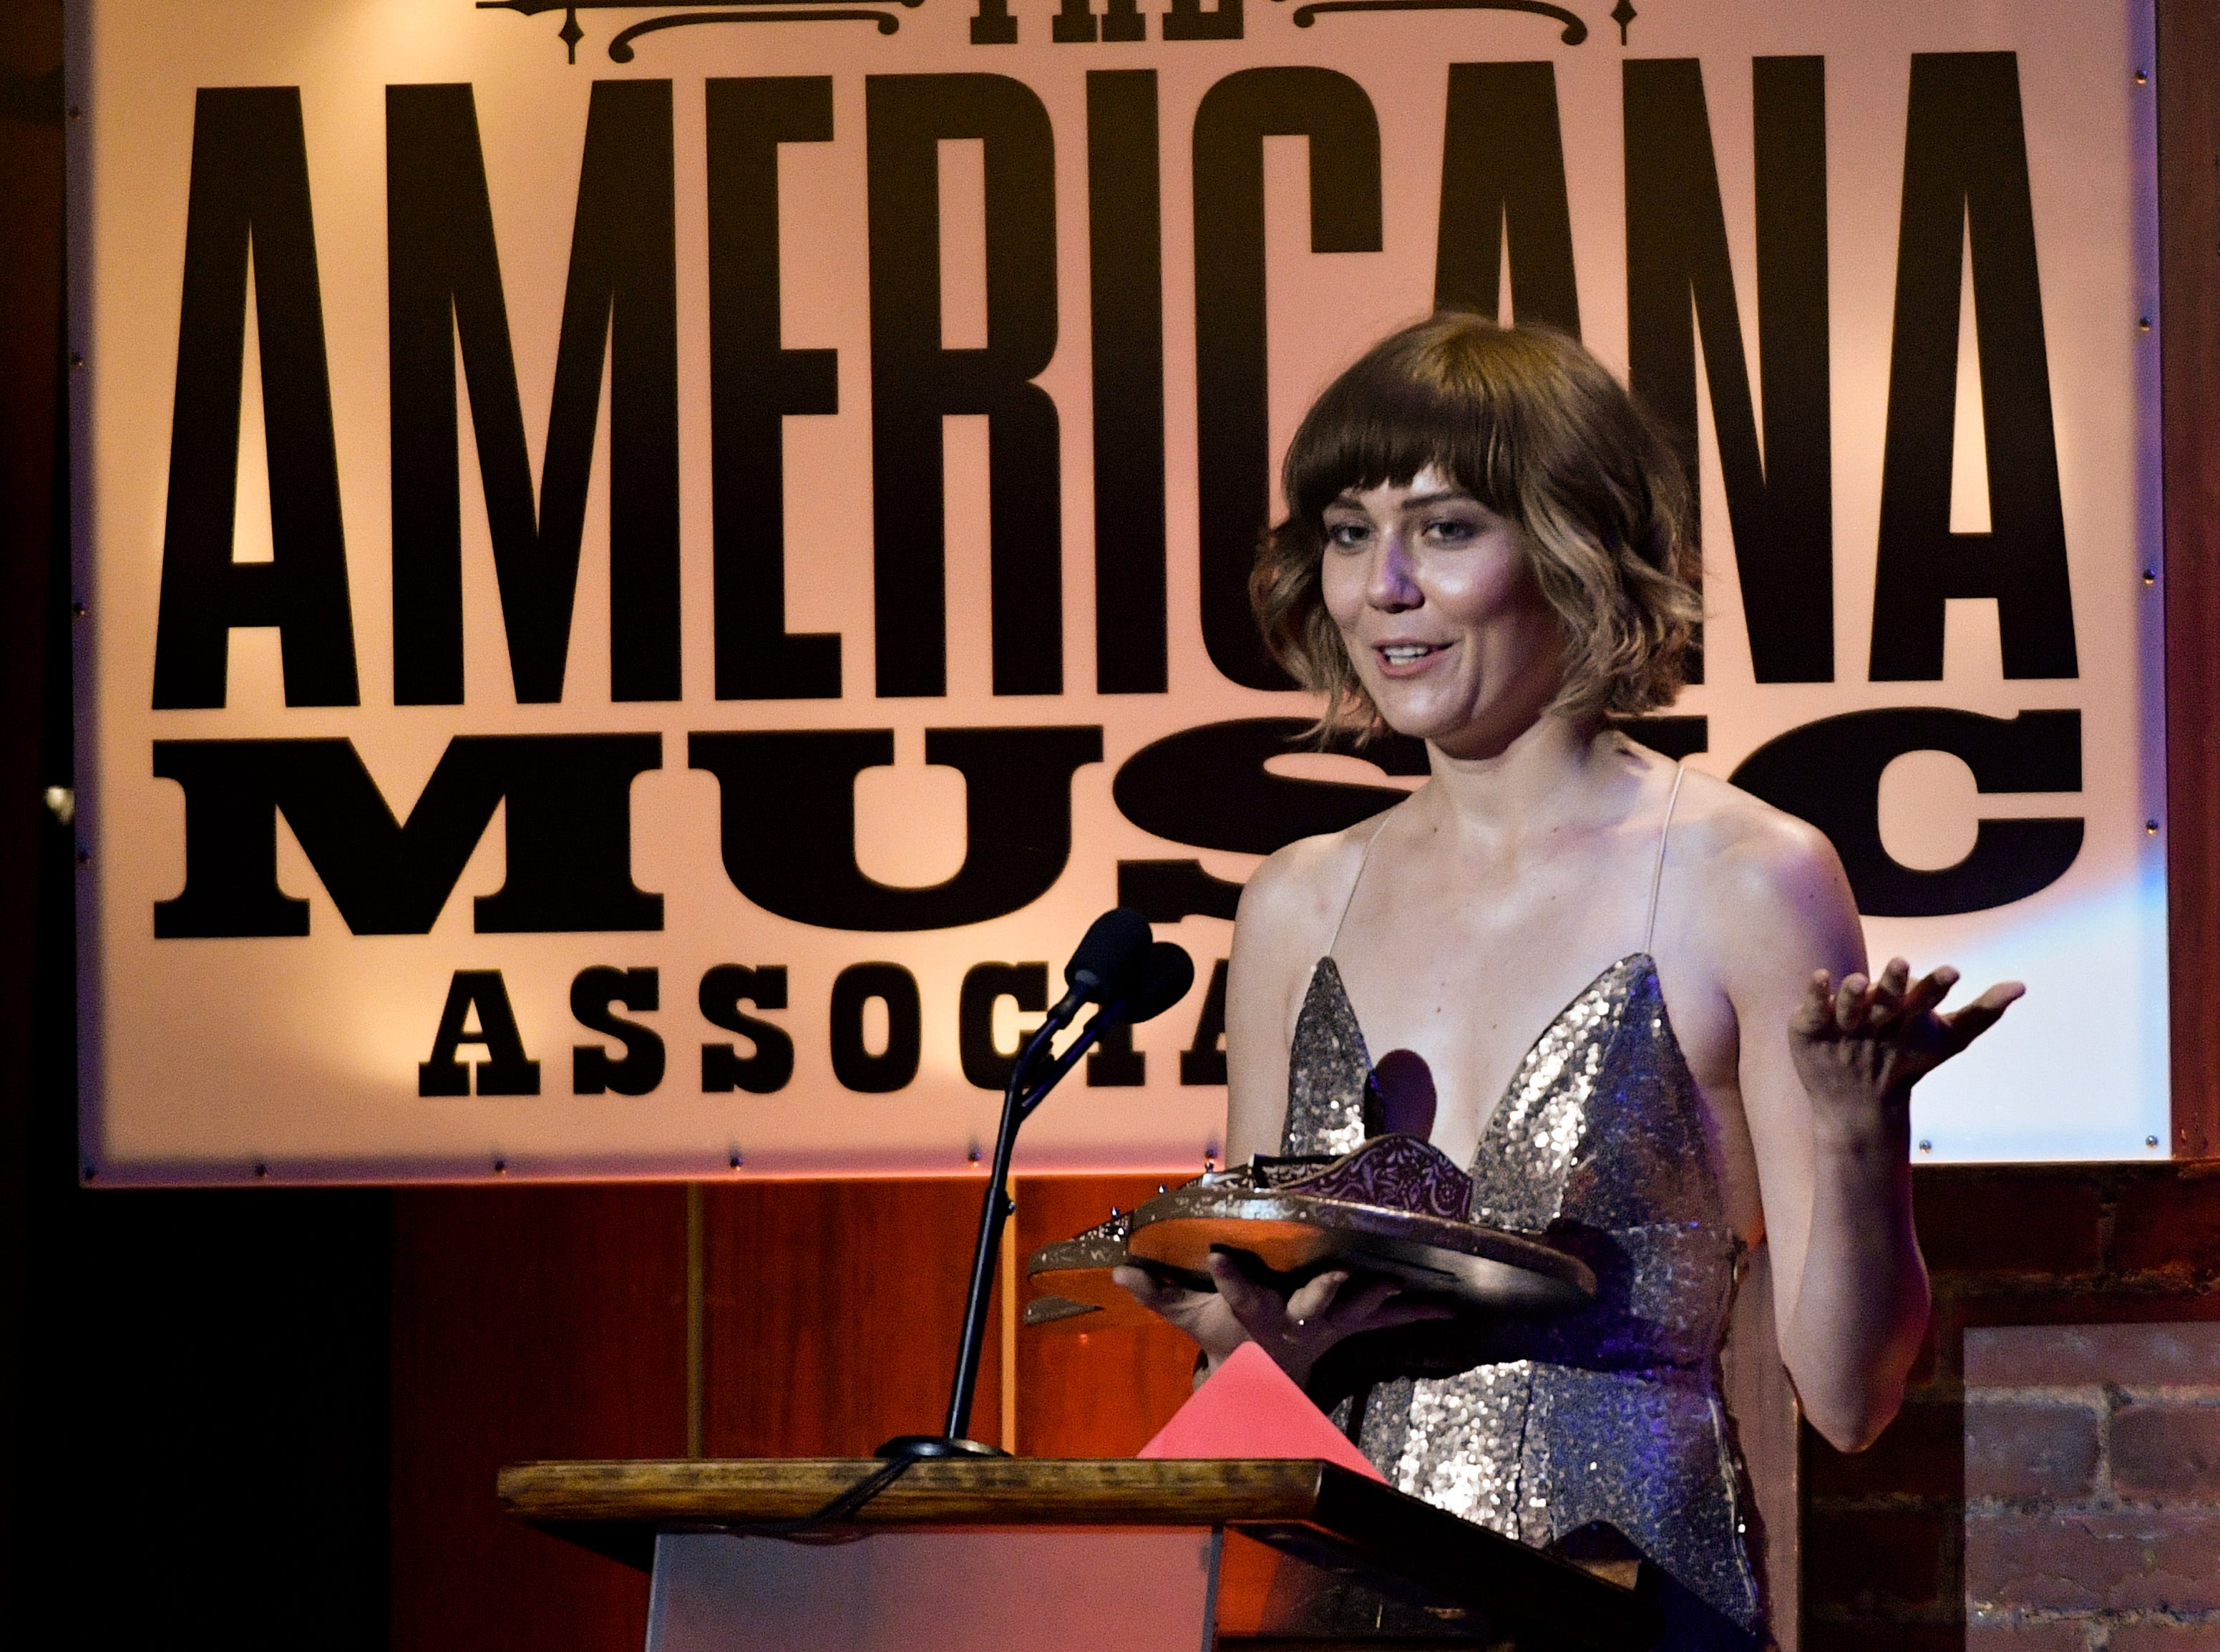 Instrumentalist of the Year Molly Tuttle accepts her award during the 2018 Americana Honors and Awards show at the Ryman Auditorium in Nashville, Tenn., Wednesday, Sept. 12, 2018.